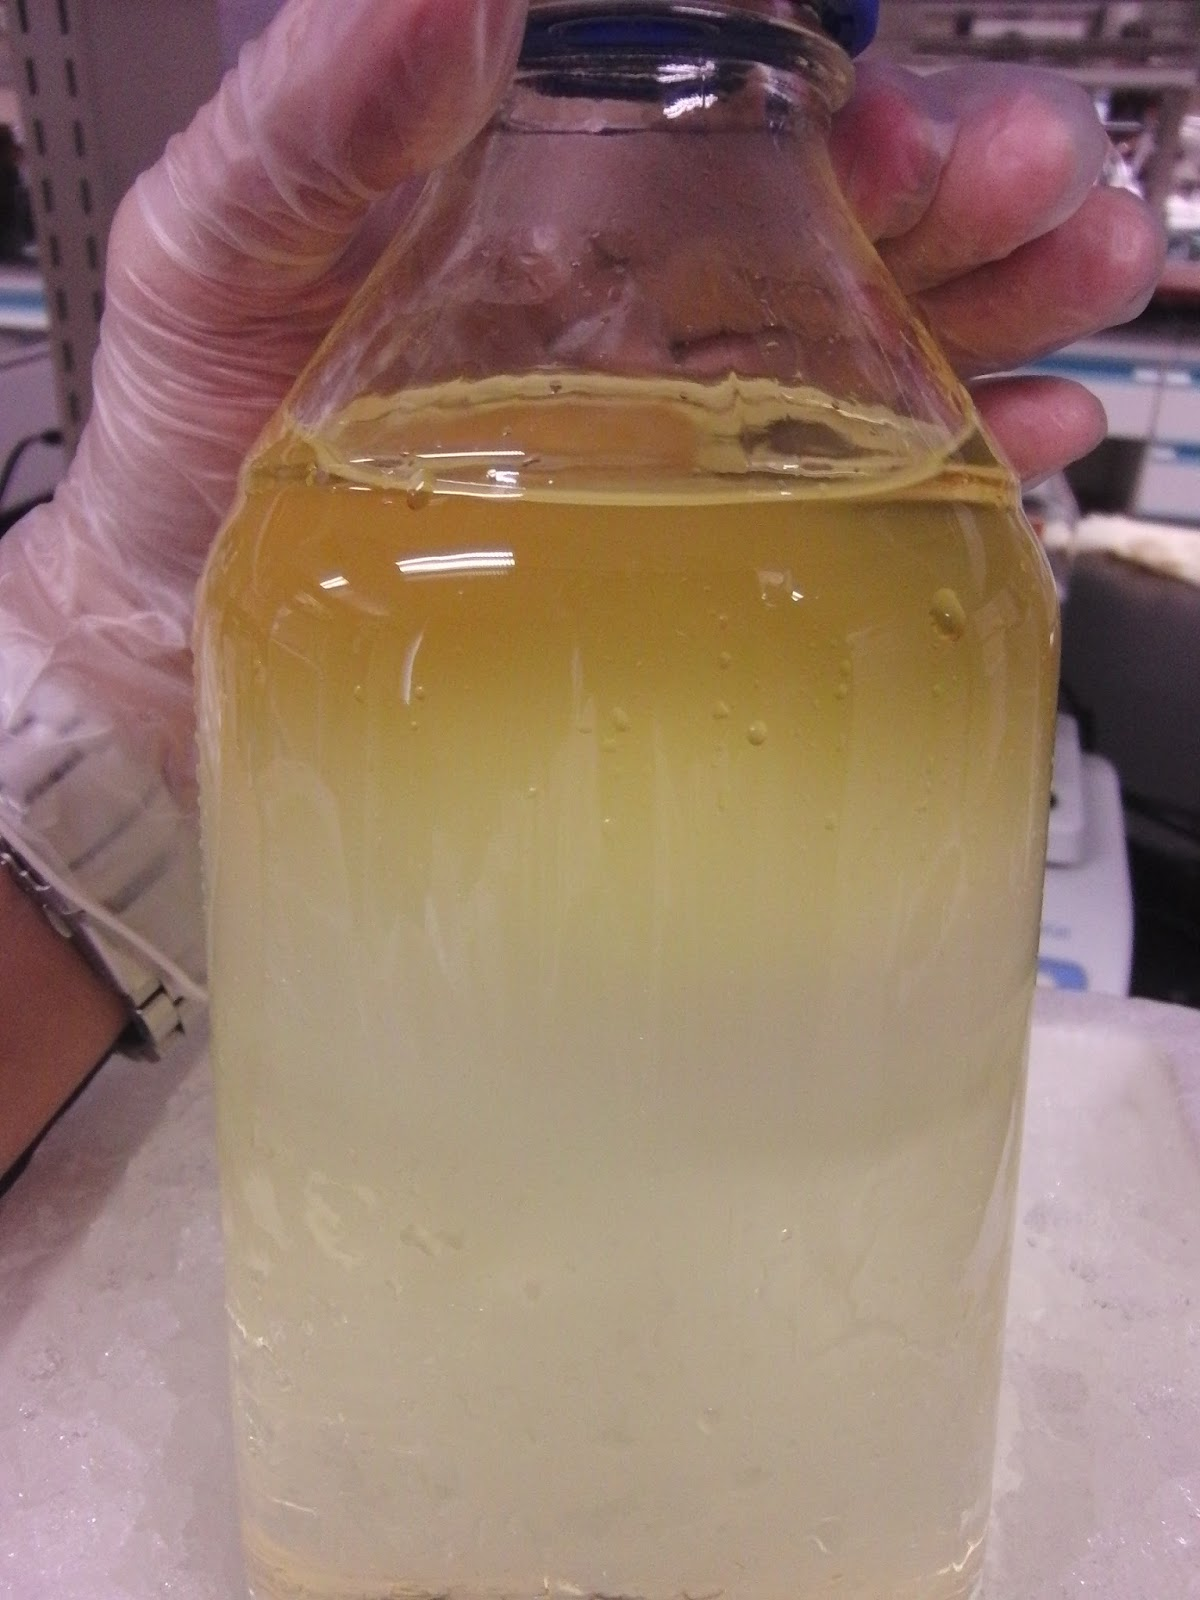 Lu Le Laboratory: Synthesis of Chloroform from Acetone and